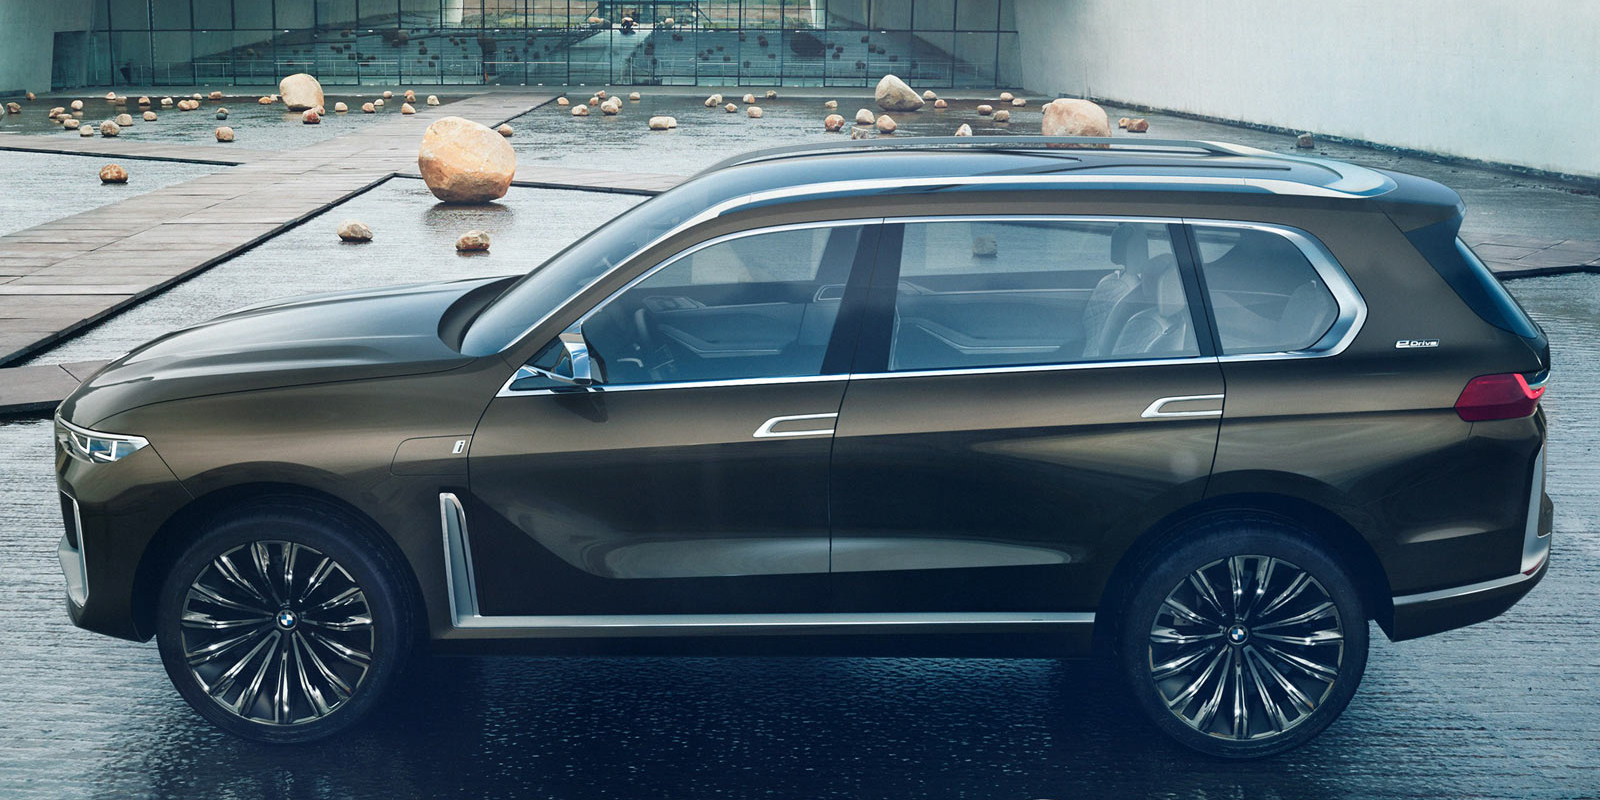 Bmw X7 2012 Www Pixshark Com Images Galleries With A Bite